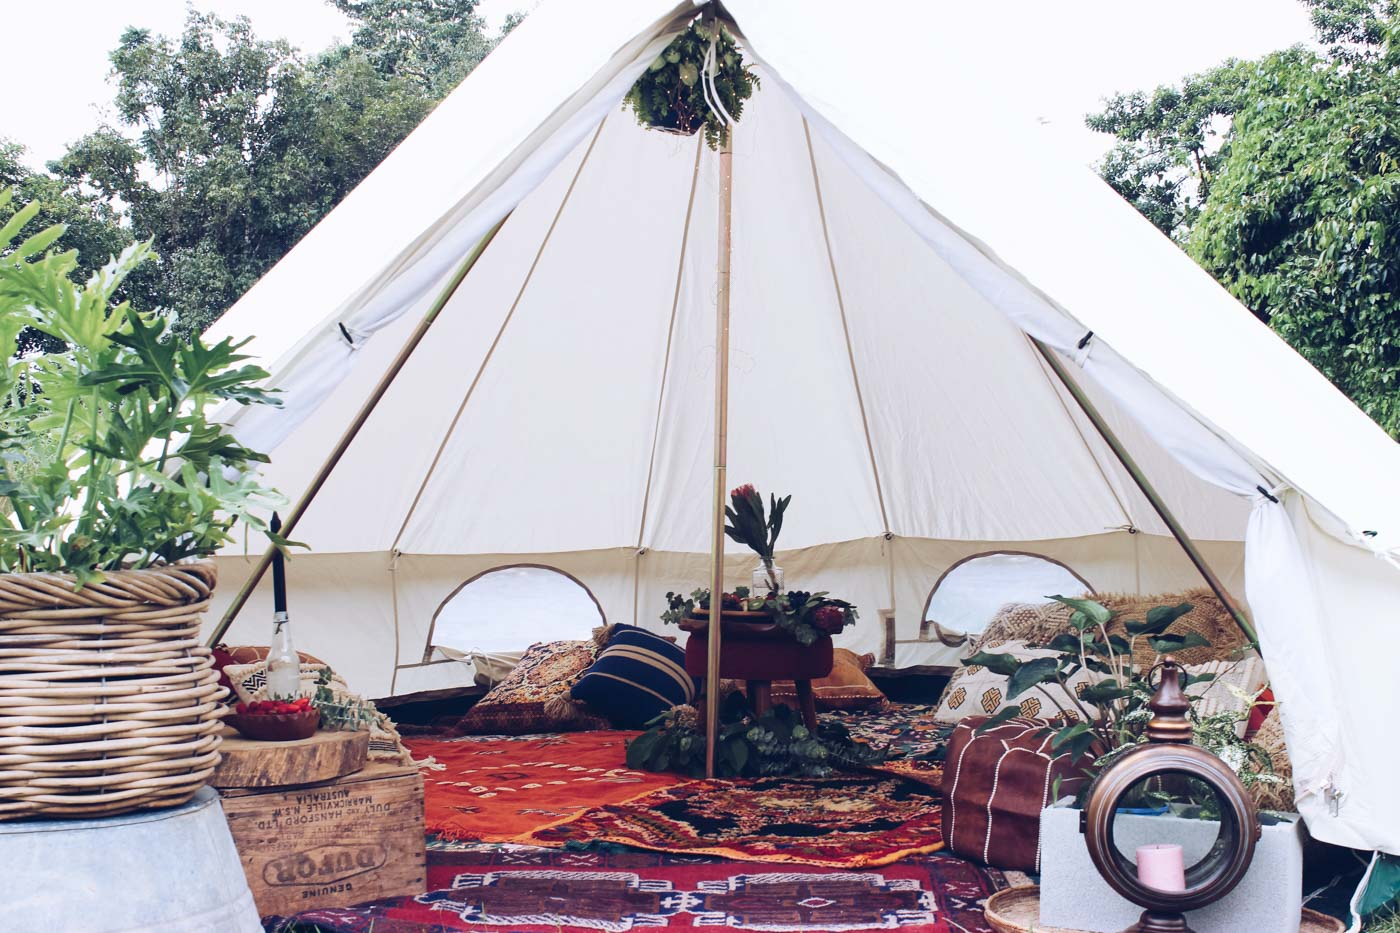 the_Collection_co_grazing_table_cairns_weddings_catering_grazing_platter_hire_pop_up_picnic_bell_tent_event_hire_styling-17-2.jpg